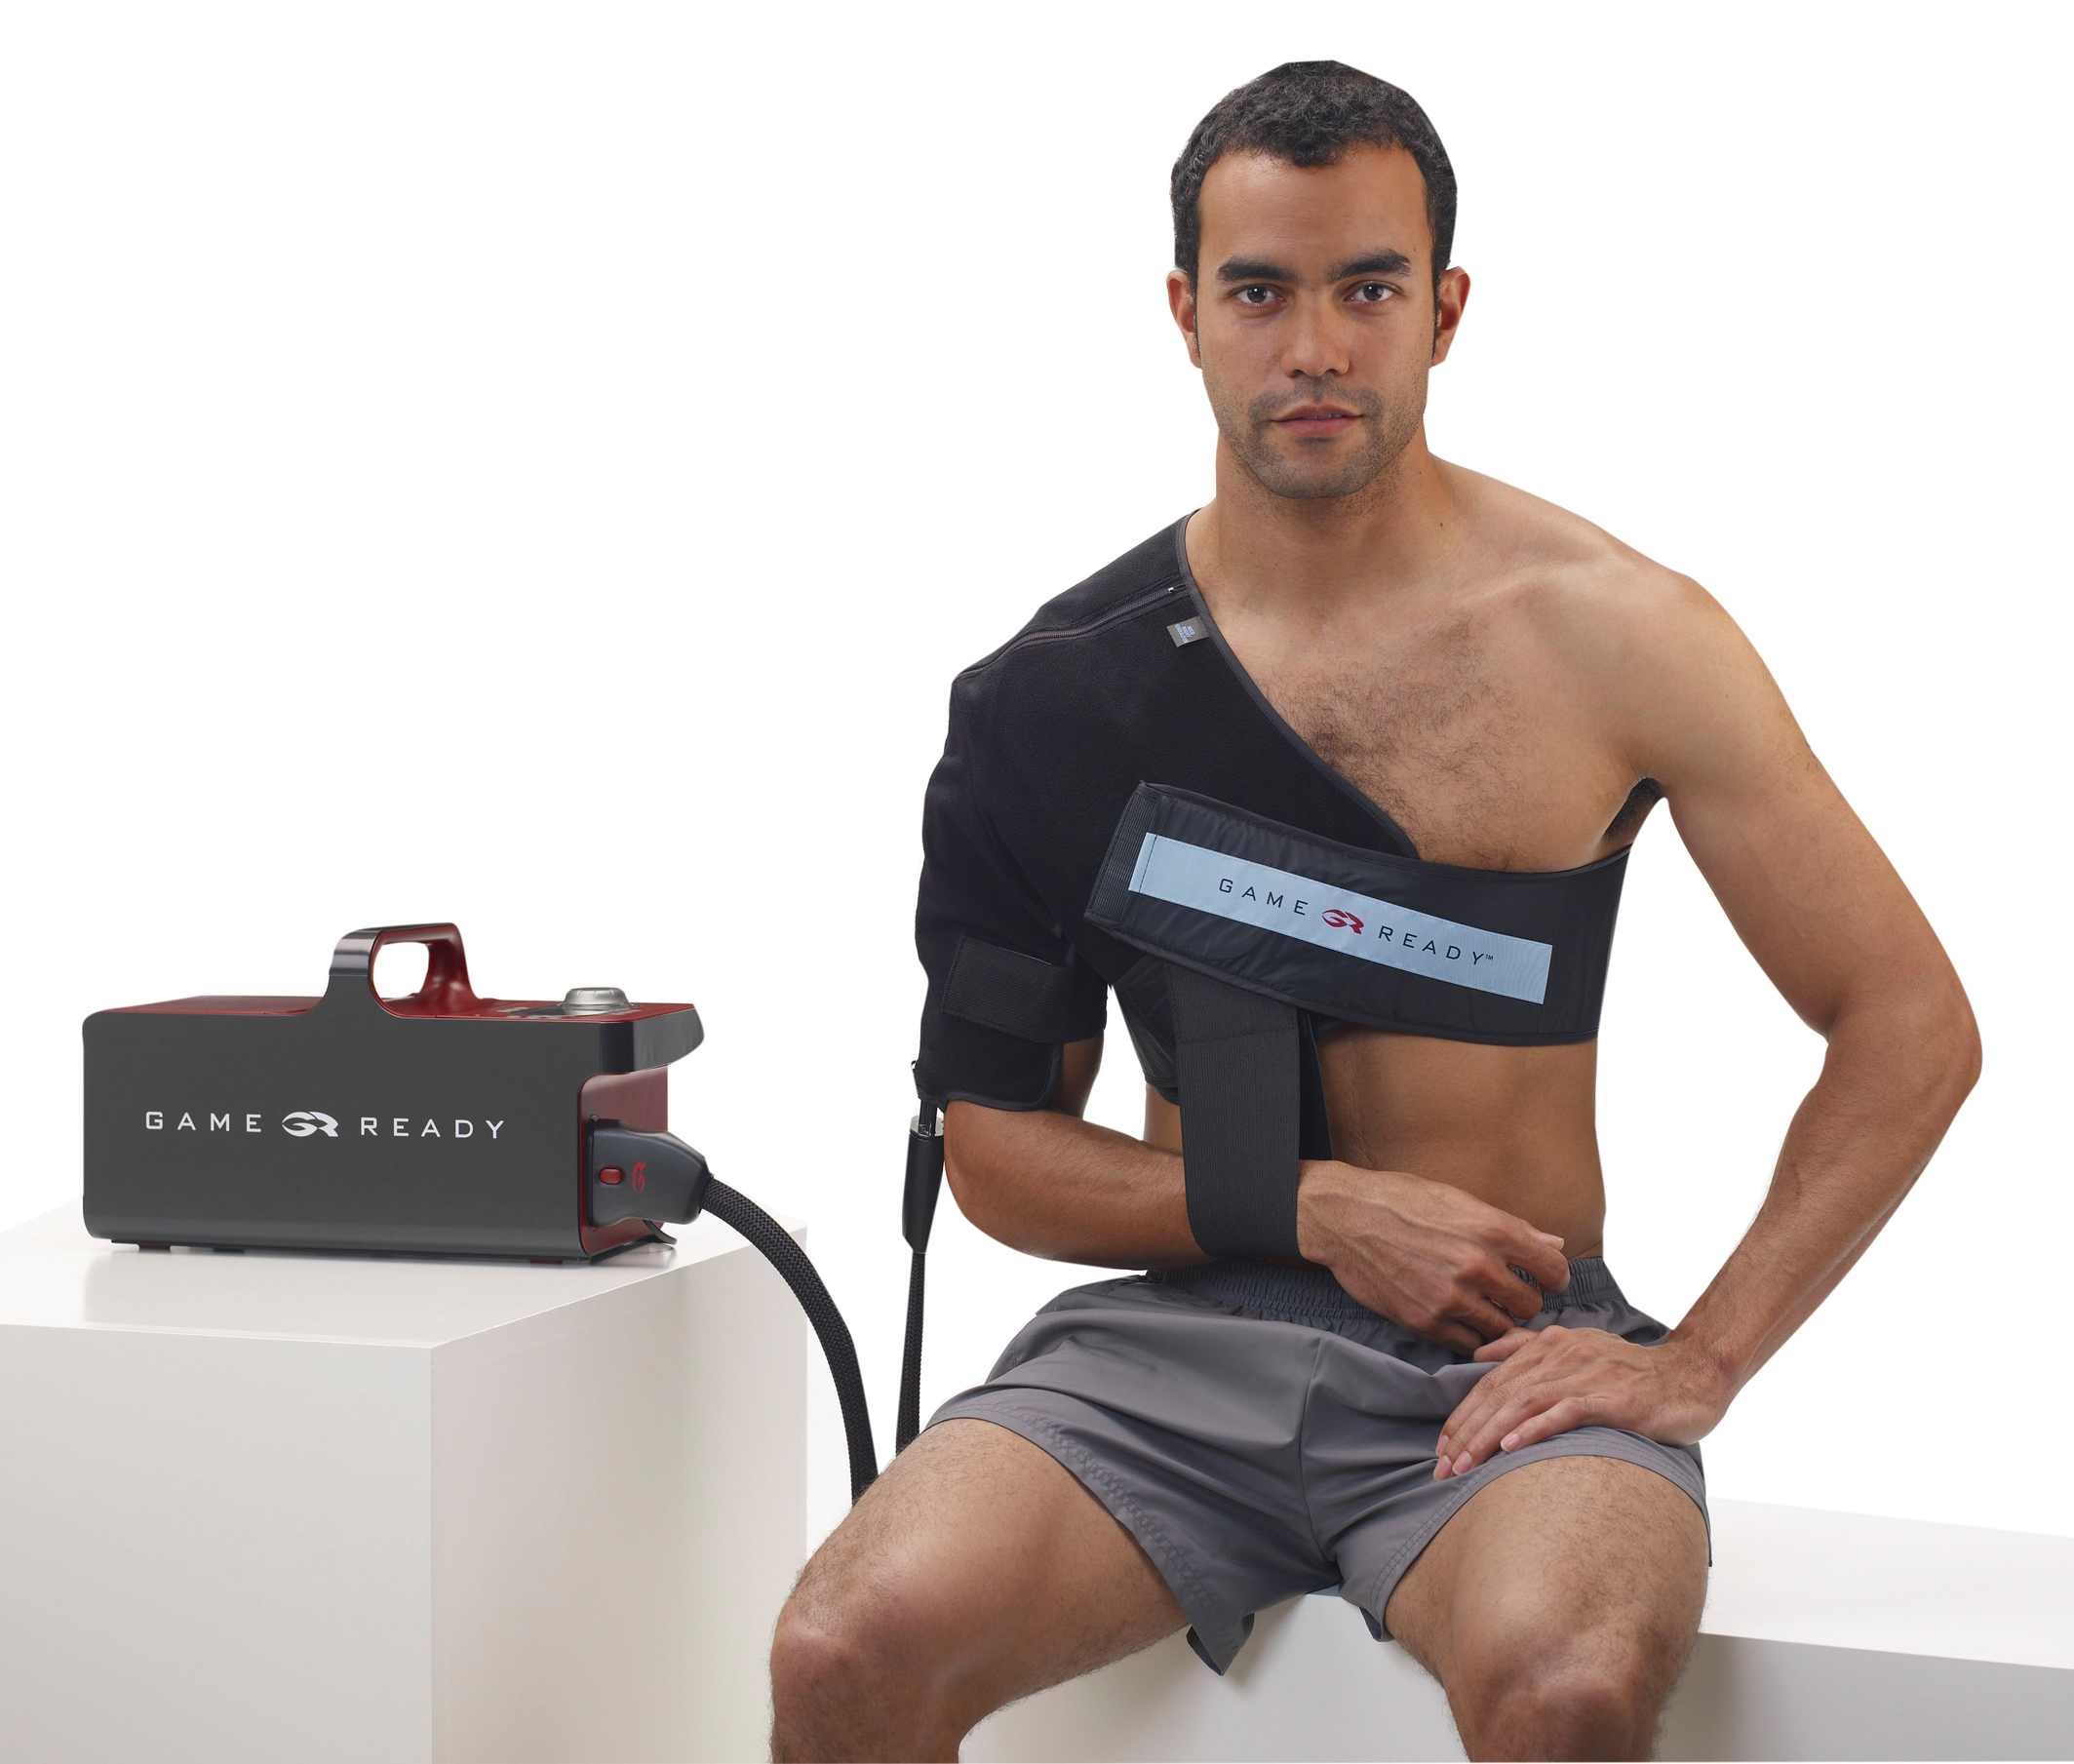 Cold Compression for Sports Injuries - Game Ready GRPro 2.1